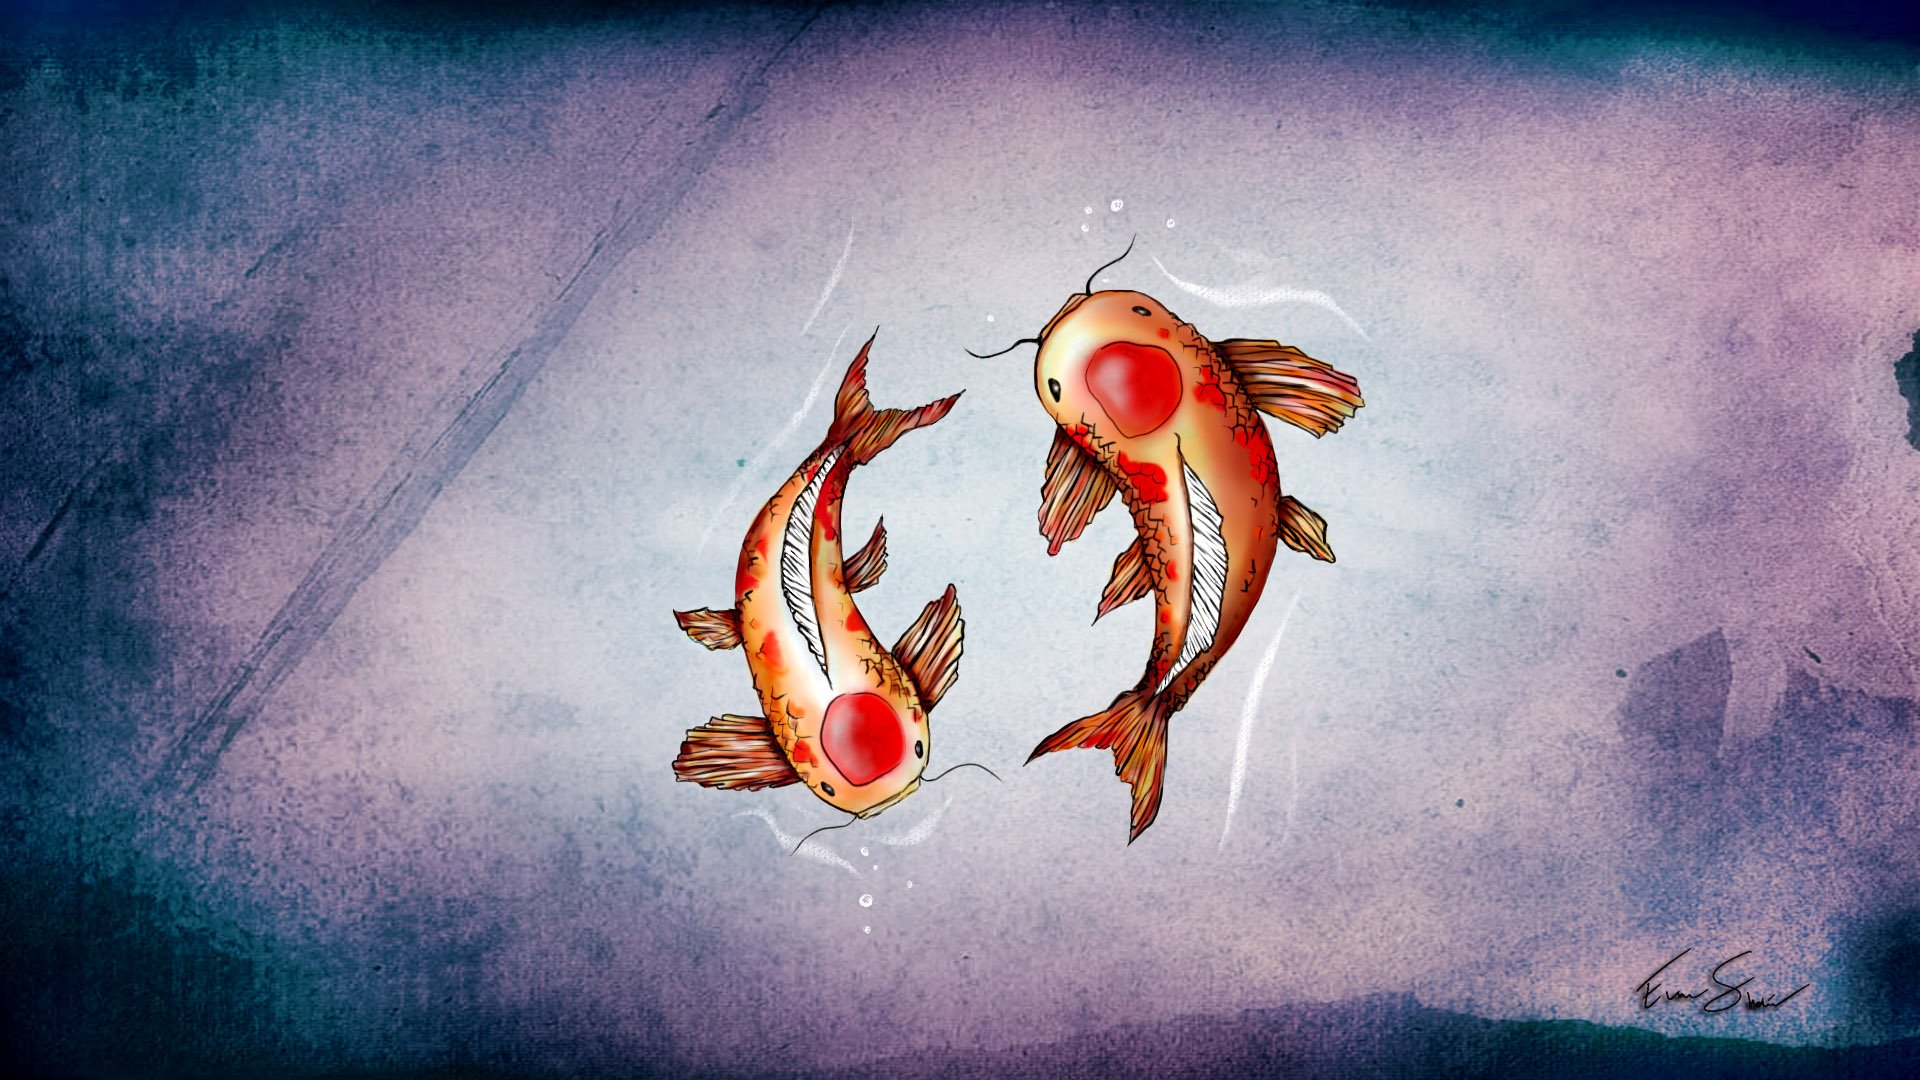 Iphone wallpaper hd fish - Coy Fish Wallpaper Wallpapersafari